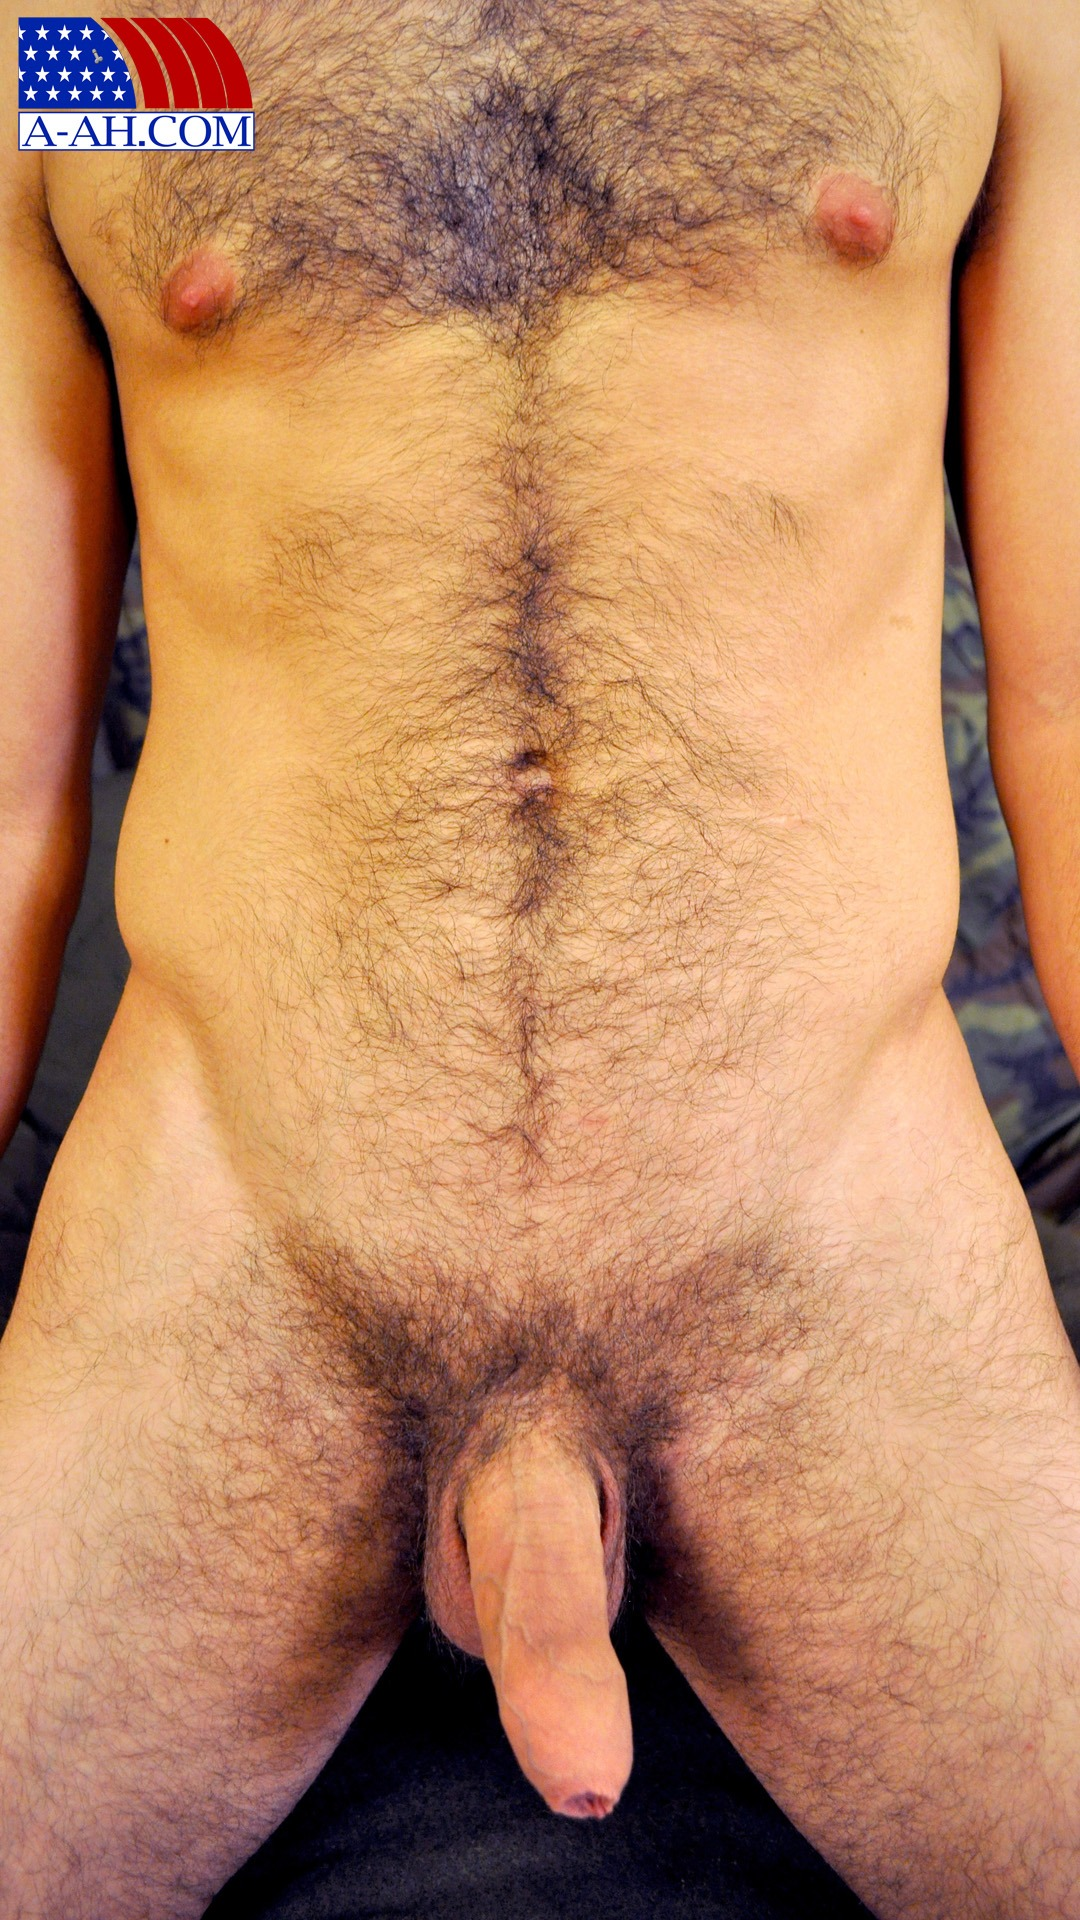 Hot Hairy Airman Vince Jerks His Uncut Cock - Hairy Guys In Gay Porn-4647